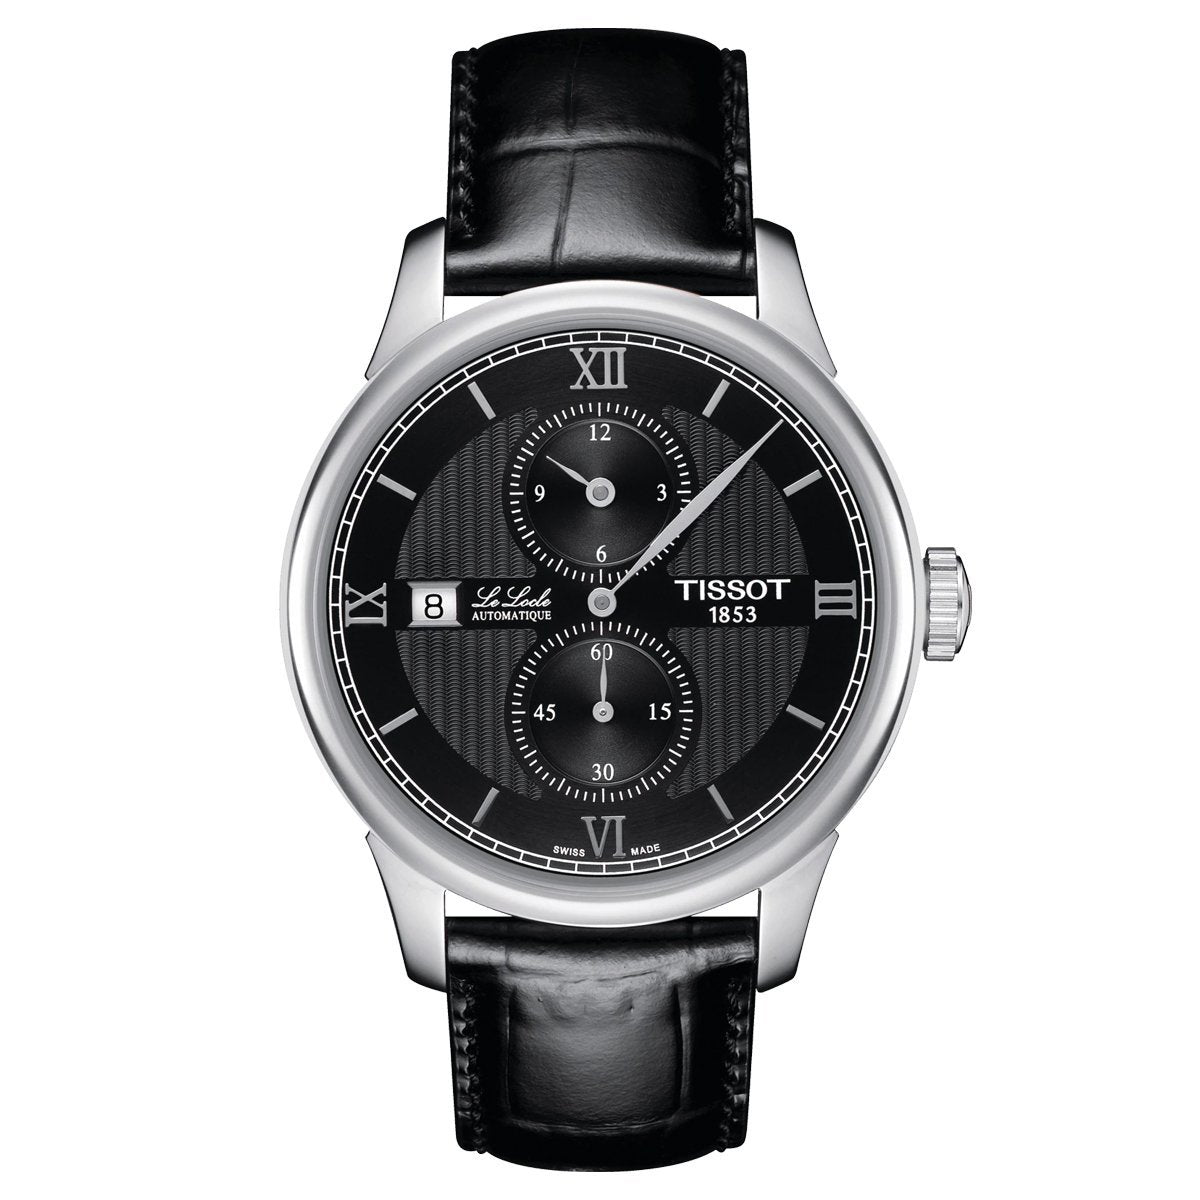 Tissot T-Classic Le Locle Regulator Black - Watches & Crystals